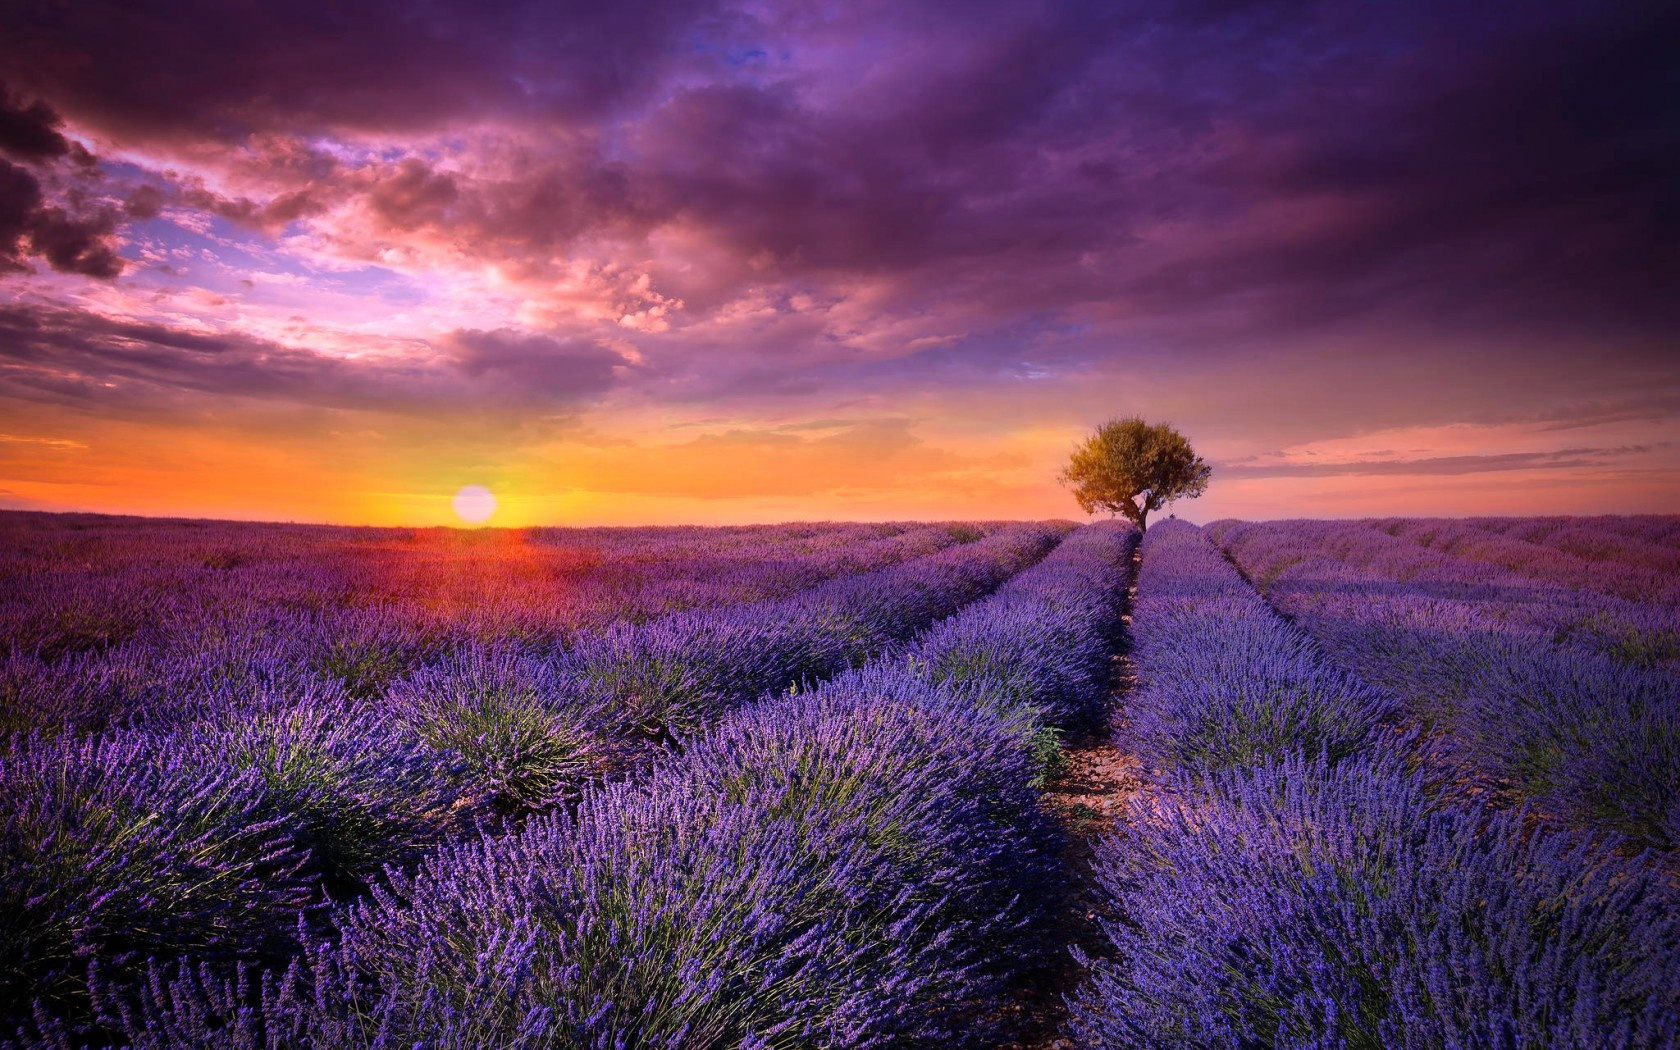 Provence Field Lavender Sunset Wallpapers   1680x1050   779399 1680x1050